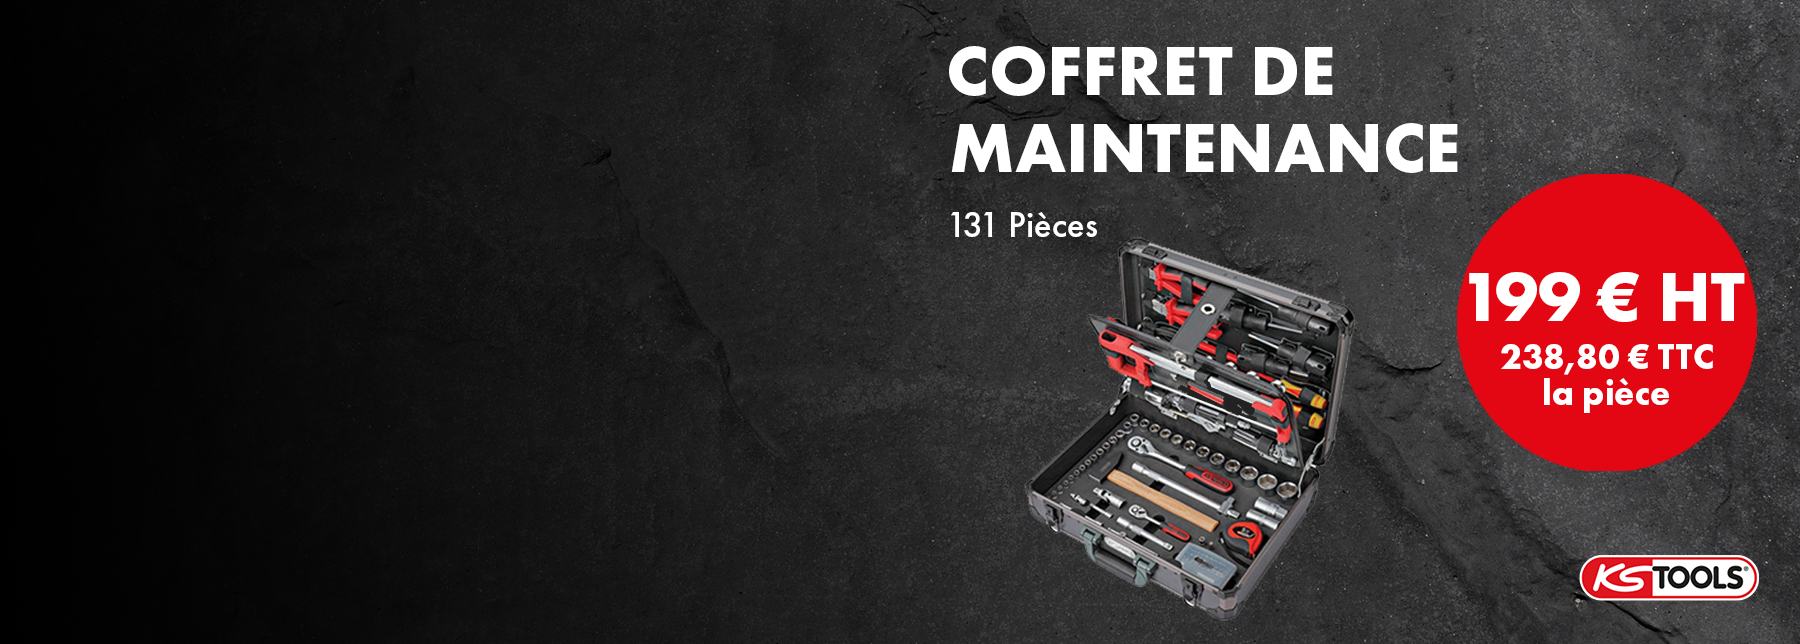 Pomotion coffret de maintenance KS TOOLS